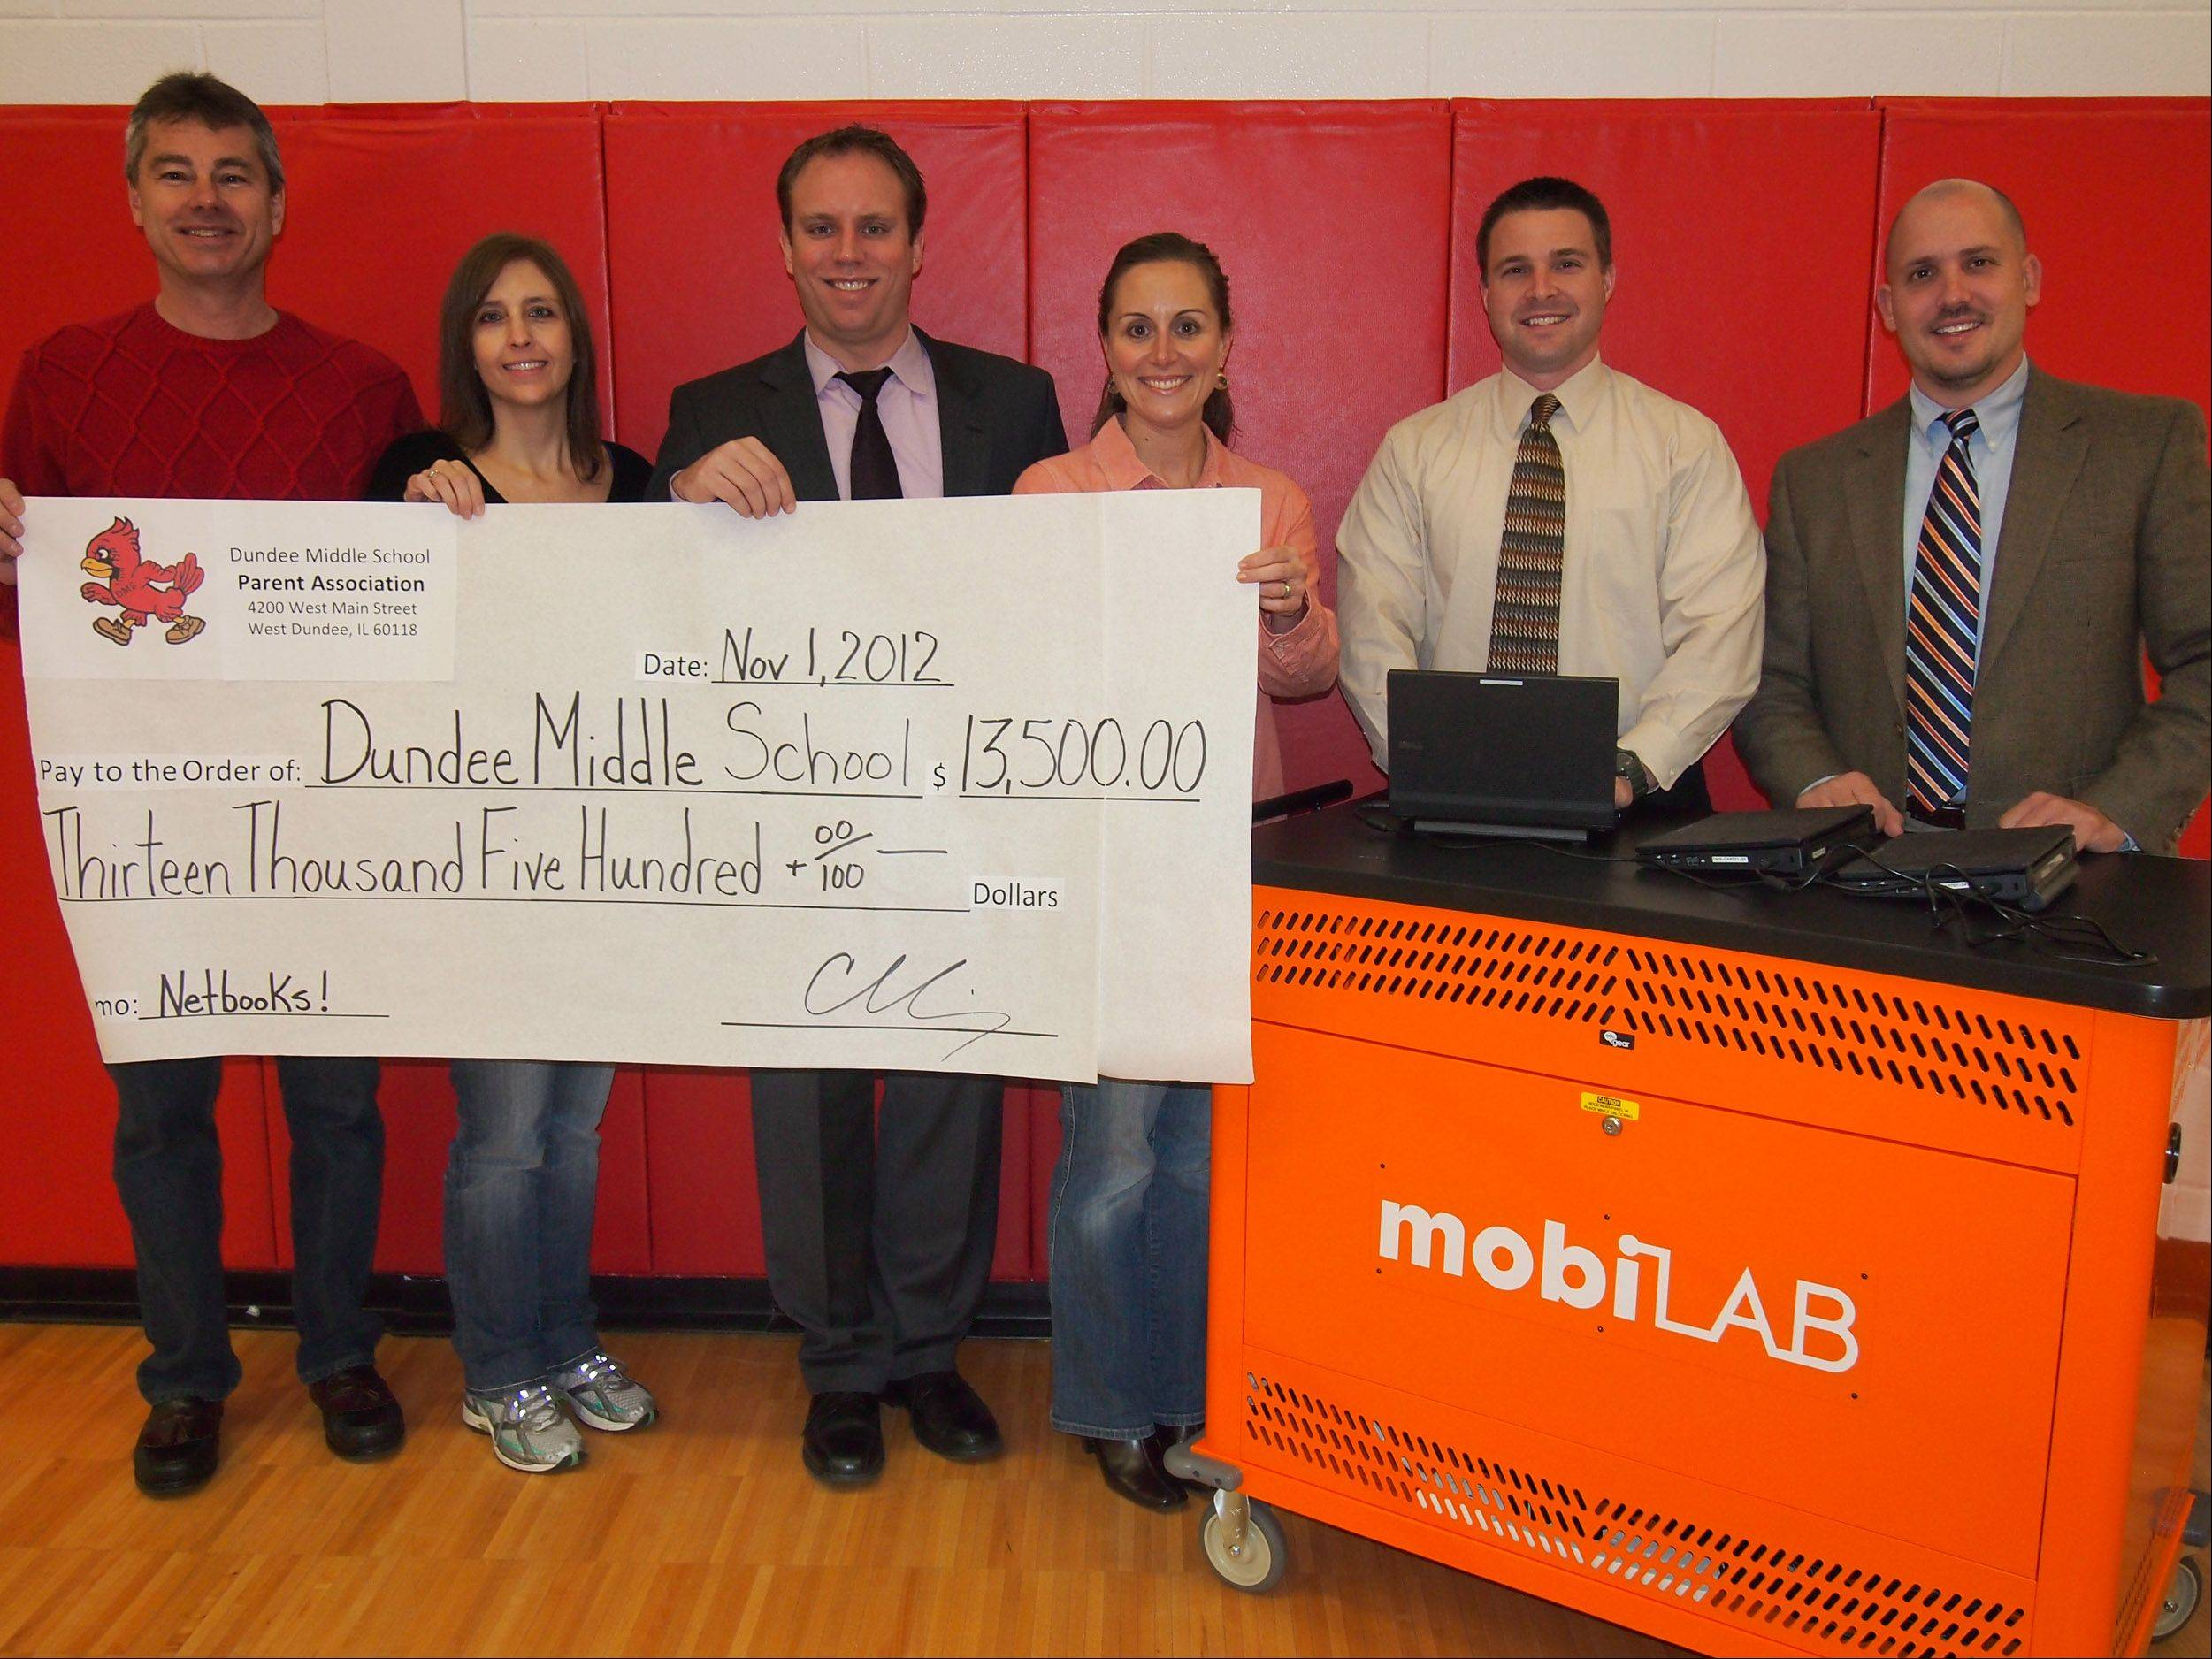 Dundee Middle School administrators and parent association members, from left, Gary Andersen, president; Ann Girten, treasurer; Joe Schumacher, principal; Carrie Koenig, vice president; Andy Reinke, assistant principal and Chris Testone, assistant principal, show off a check for $13,500 and a mobile netbook cart.